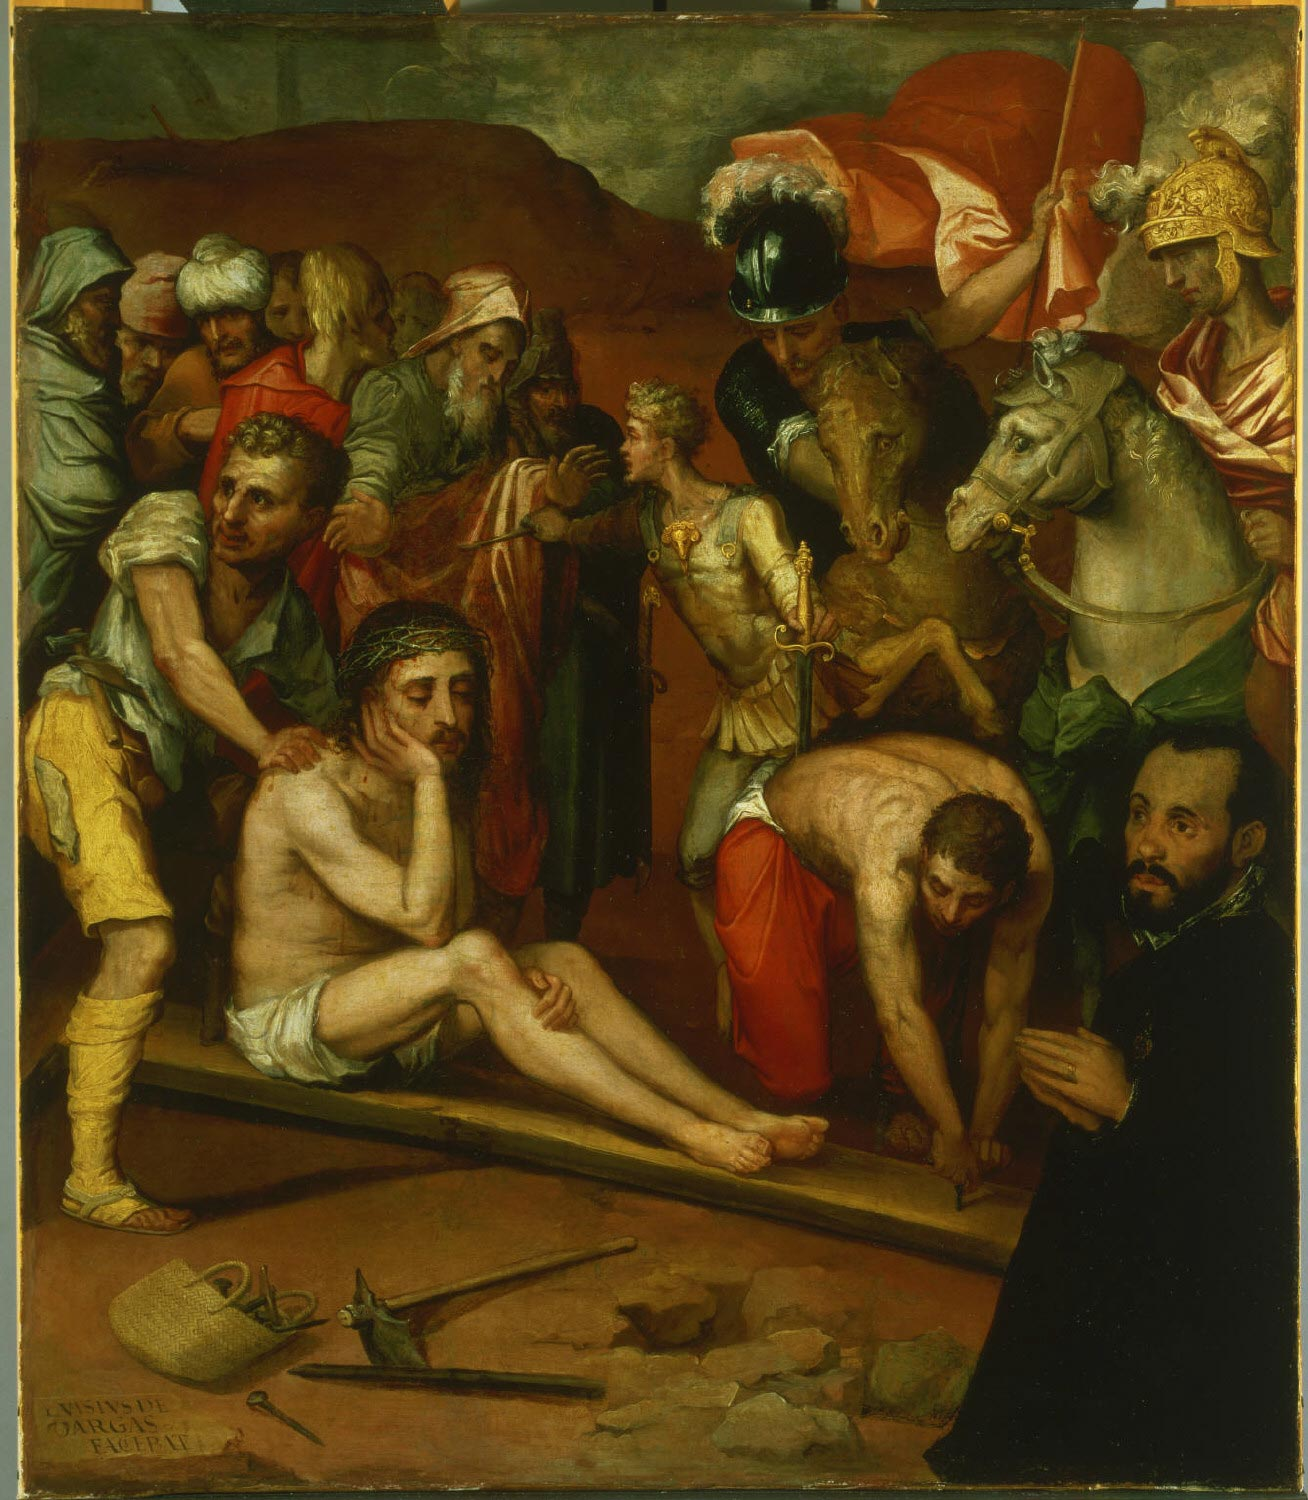 Preparations for the Crucifixion